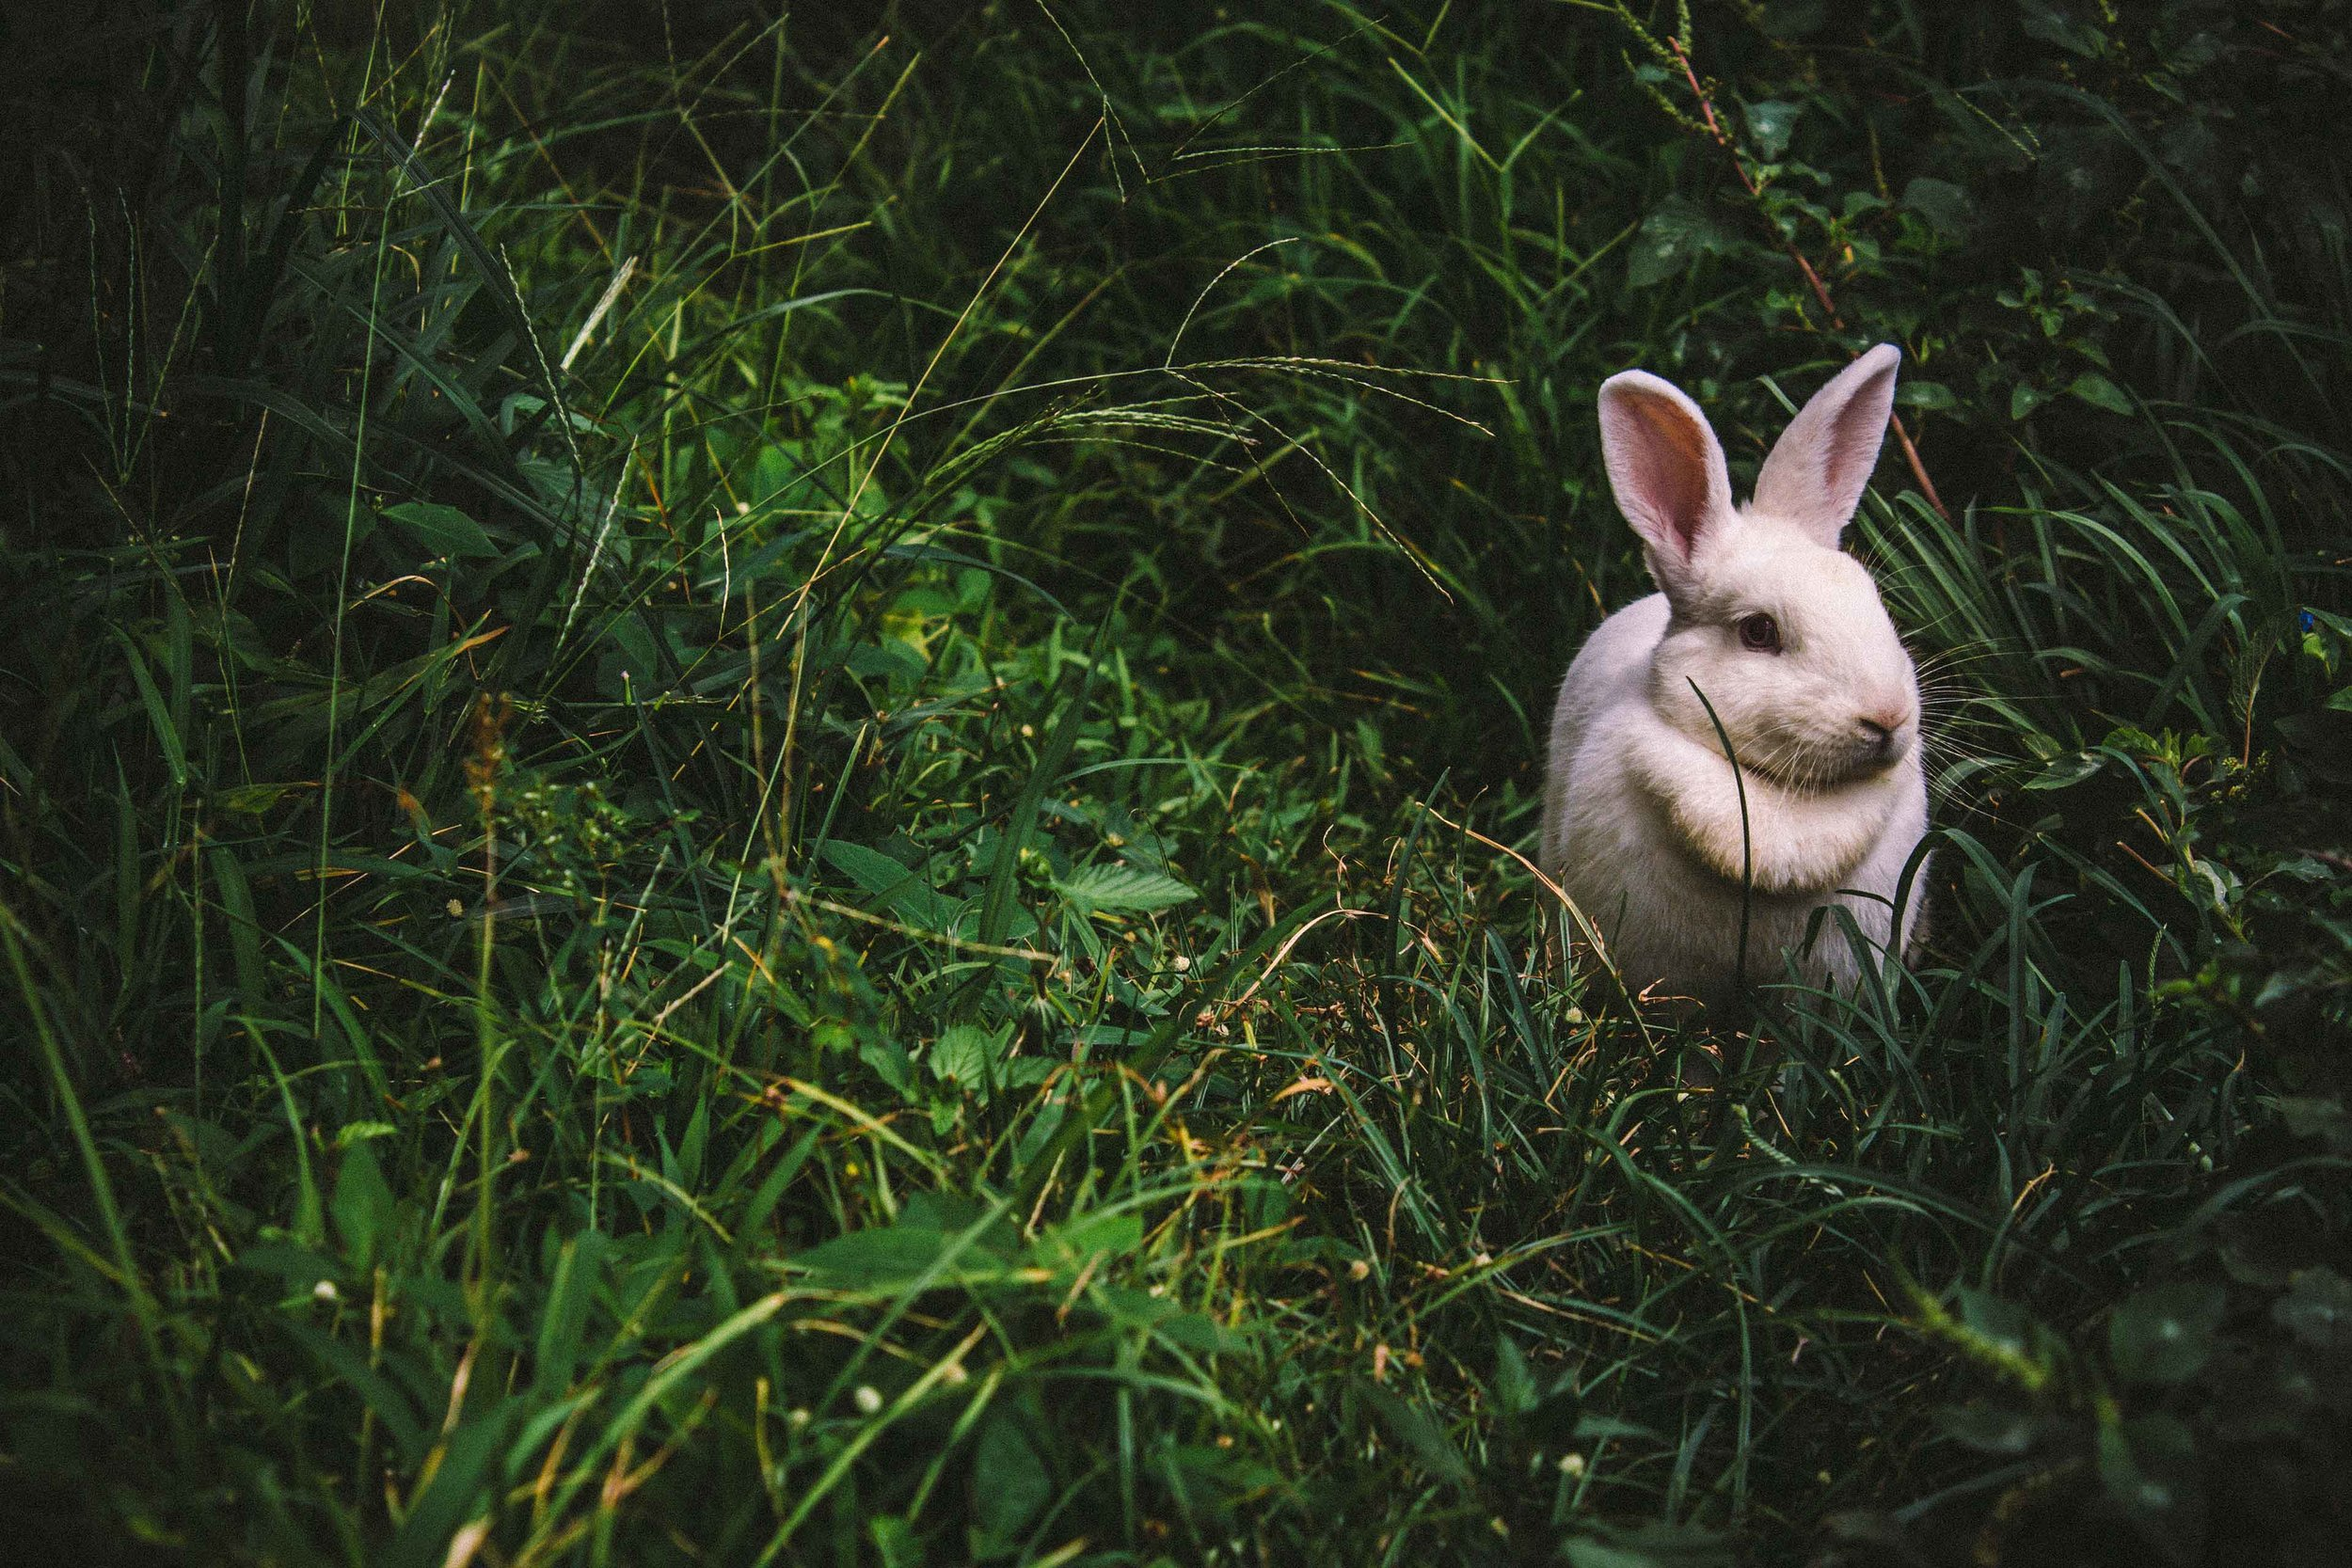 Les-Naly-PETA-Beauty-without-Bunnies-cruelty-free.jpg